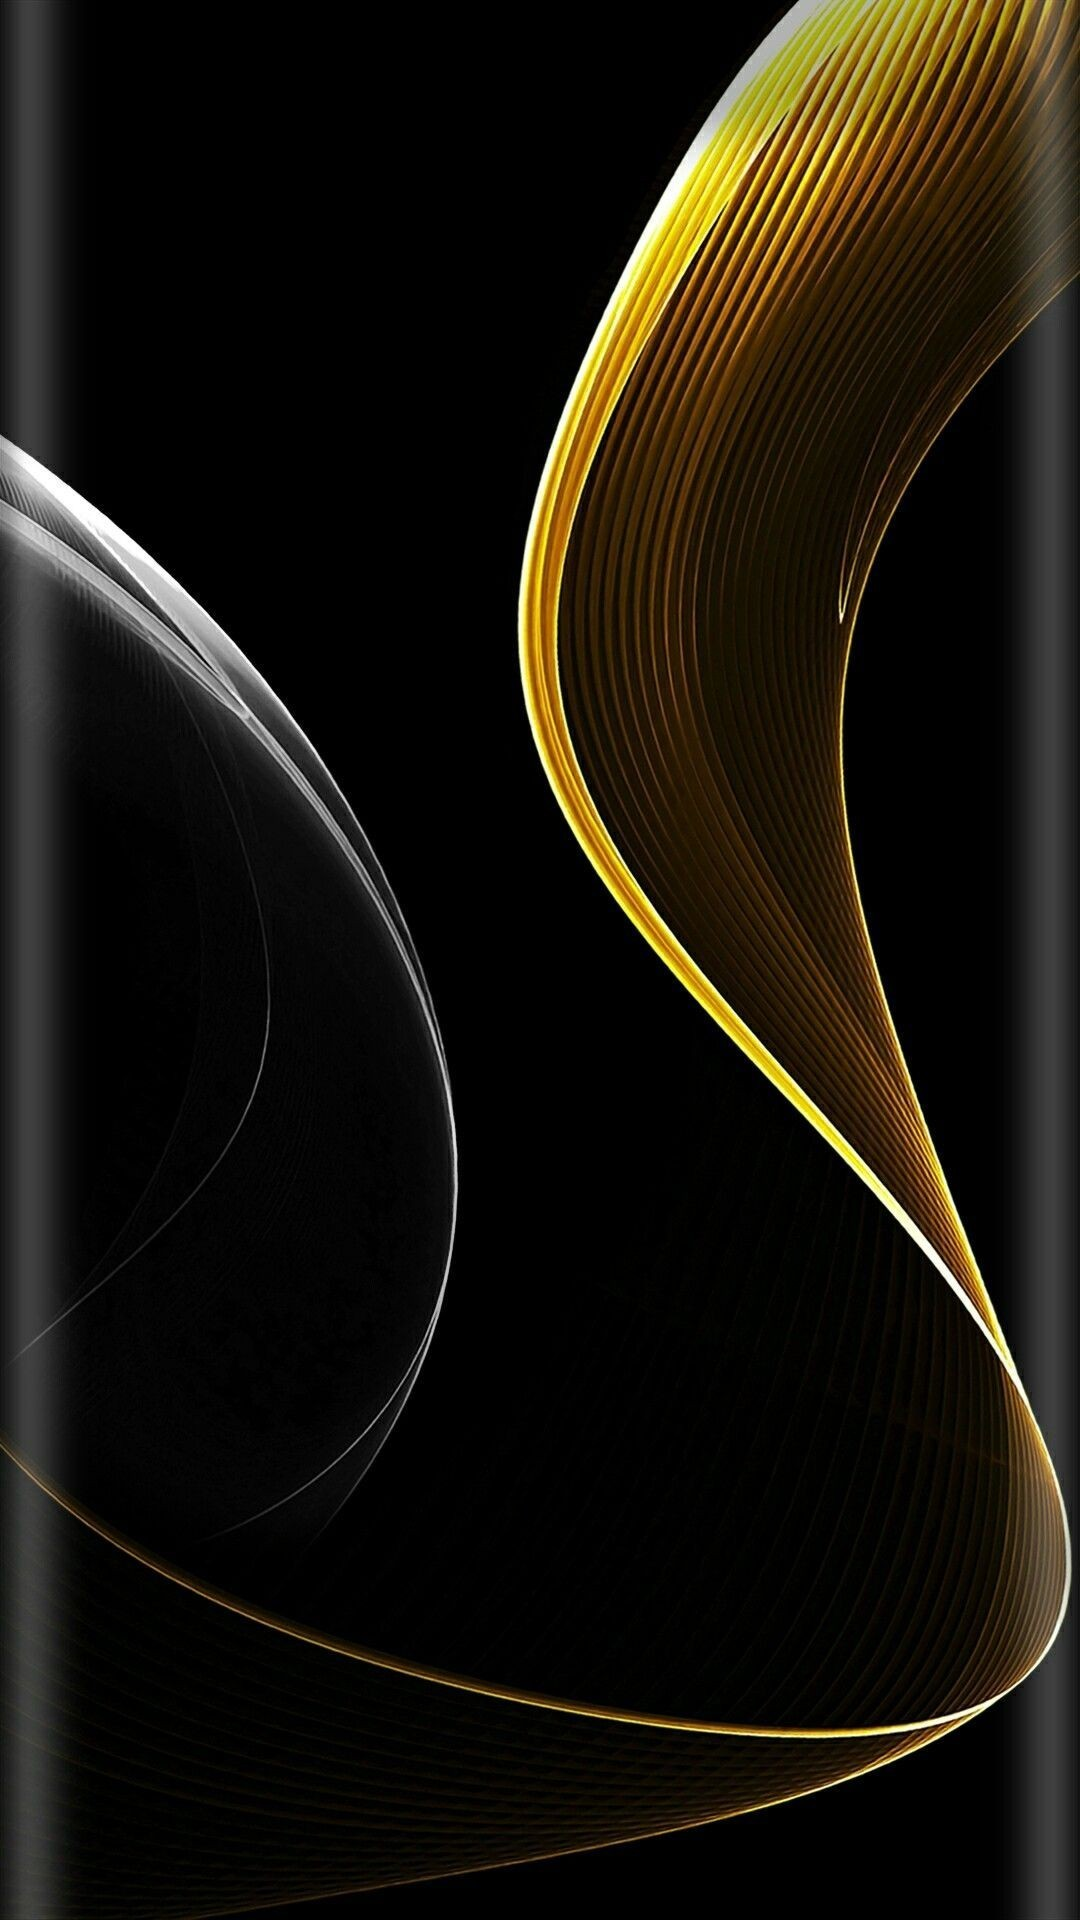 Wallpaper Samsung Gold Wallpaper Wallpaper Backgrounds Black Gold Hd Android 1080x1920 Wallpaper Teahub Io